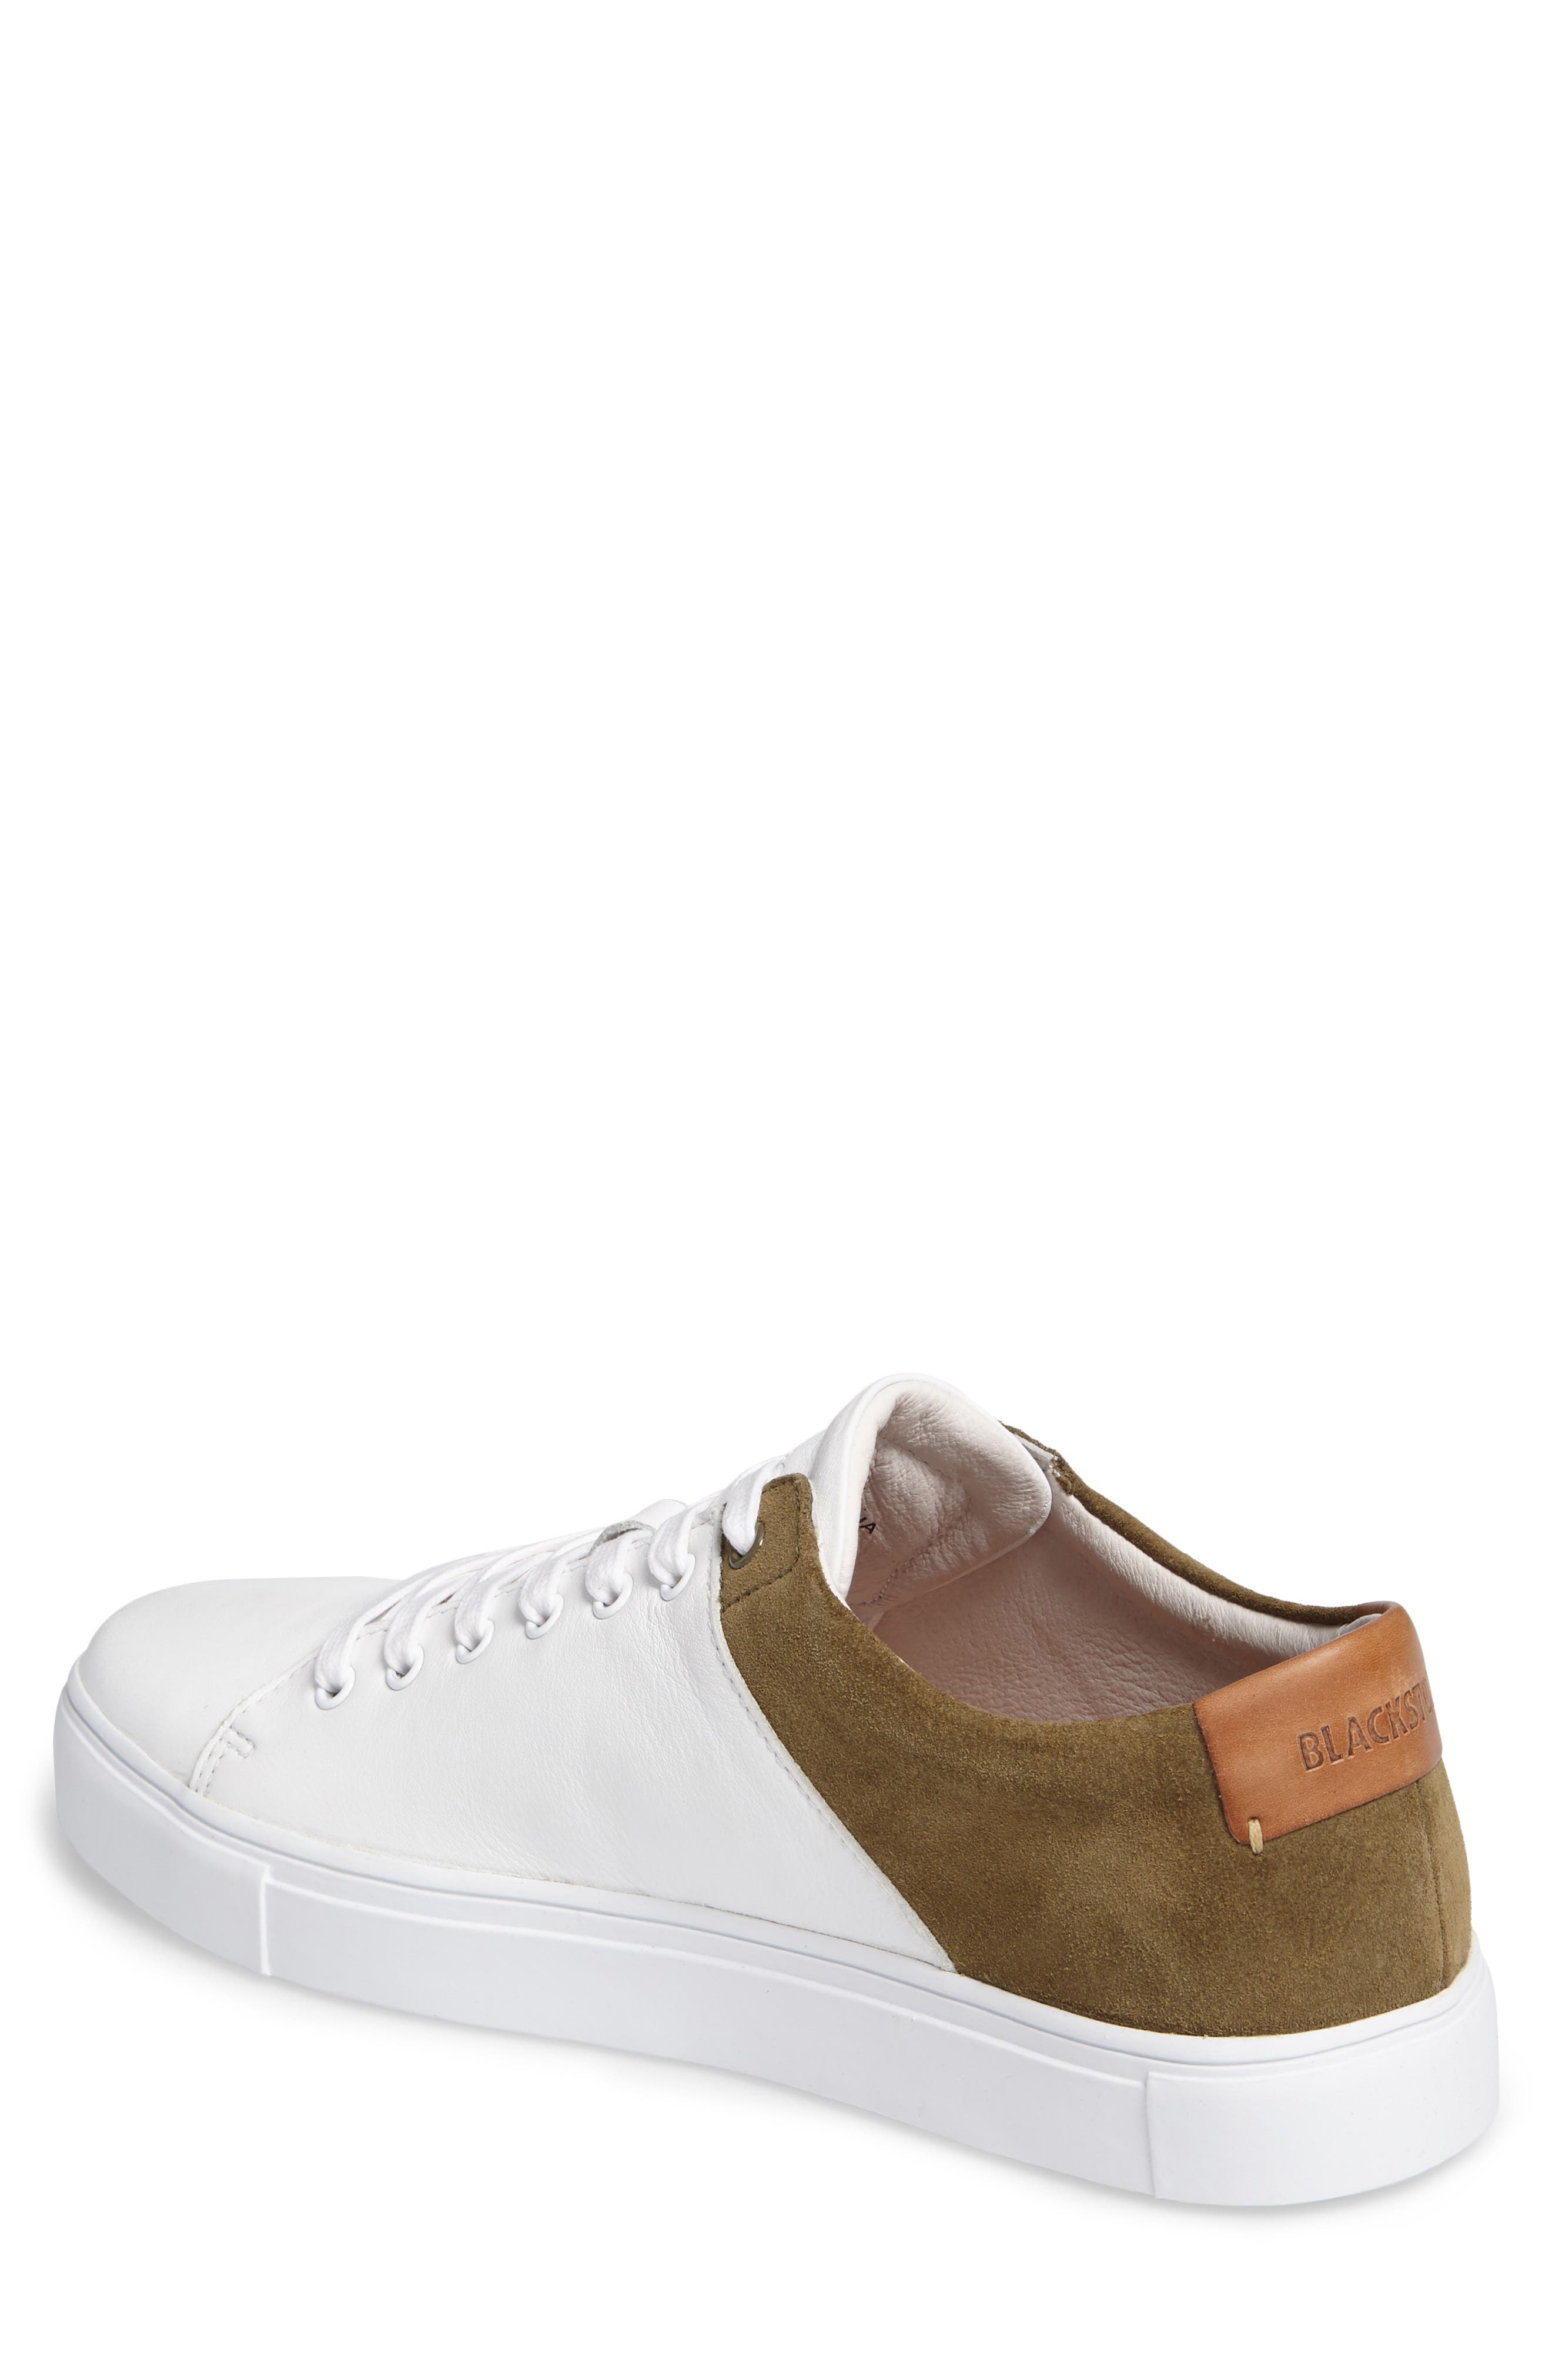 NM03 Two-Tone Sneaker,                             Alternate thumbnail 2, color,                             White/ Olive Leather